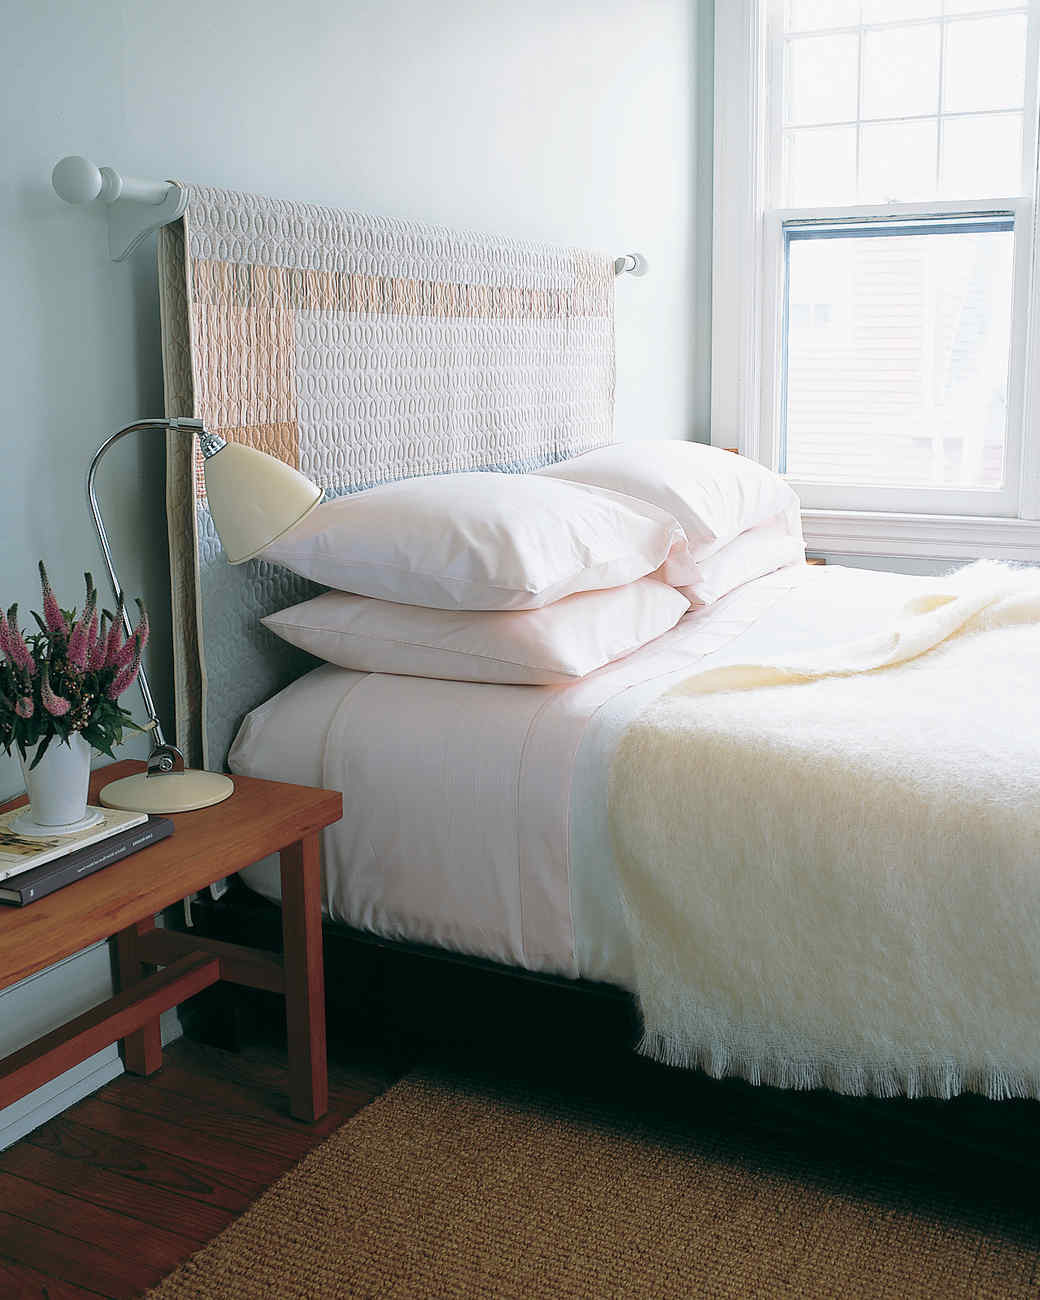 Best ideas about DIY Bed Headboards . Save or Pin 11 DIY Headboard Ideas to Give Your Bed a Boost Now.